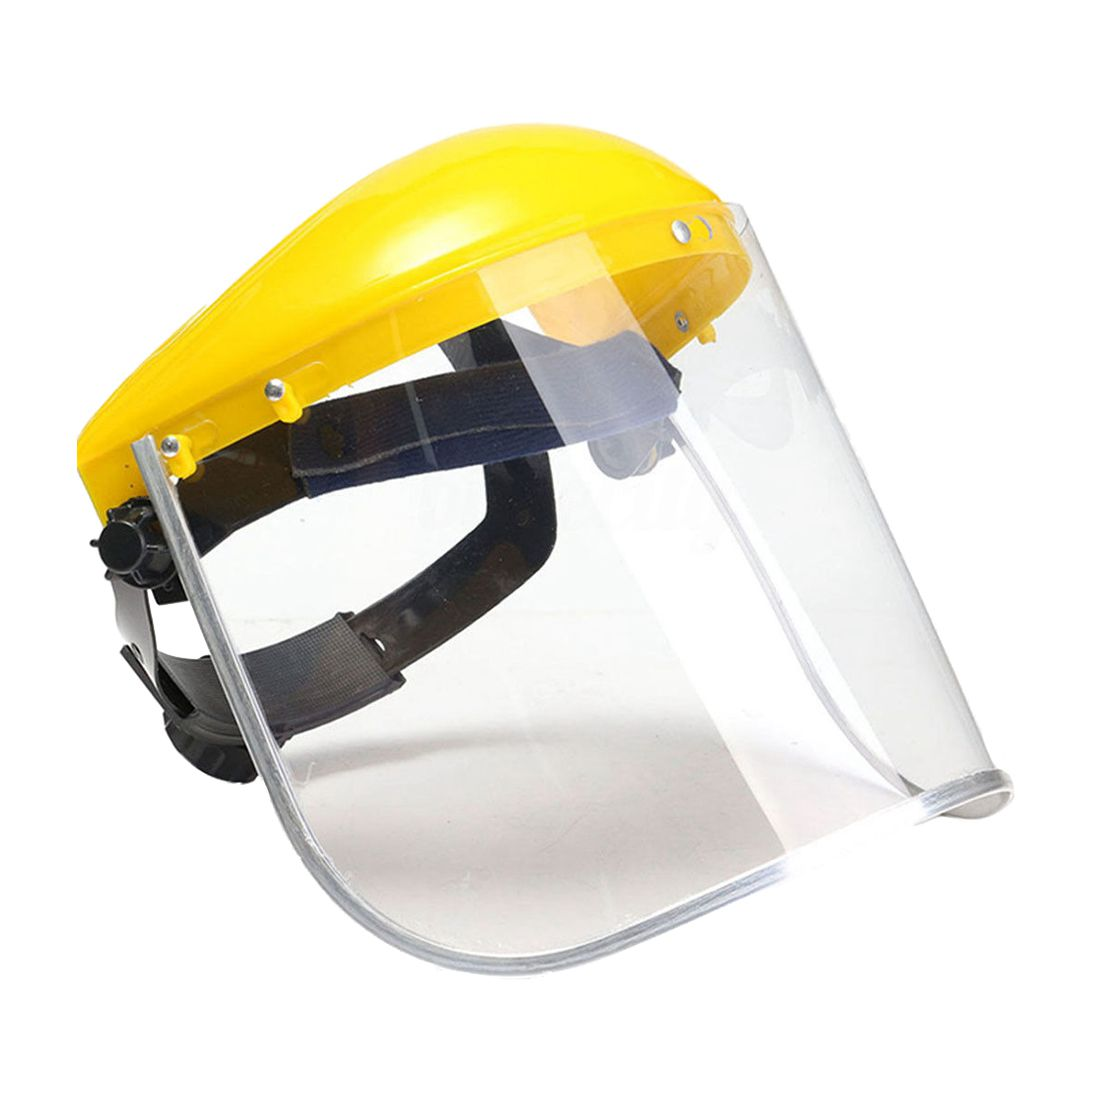 MOOL 1x Clear Safety Grinding Face Shield Screen Mask For Visors Eye Face Protection